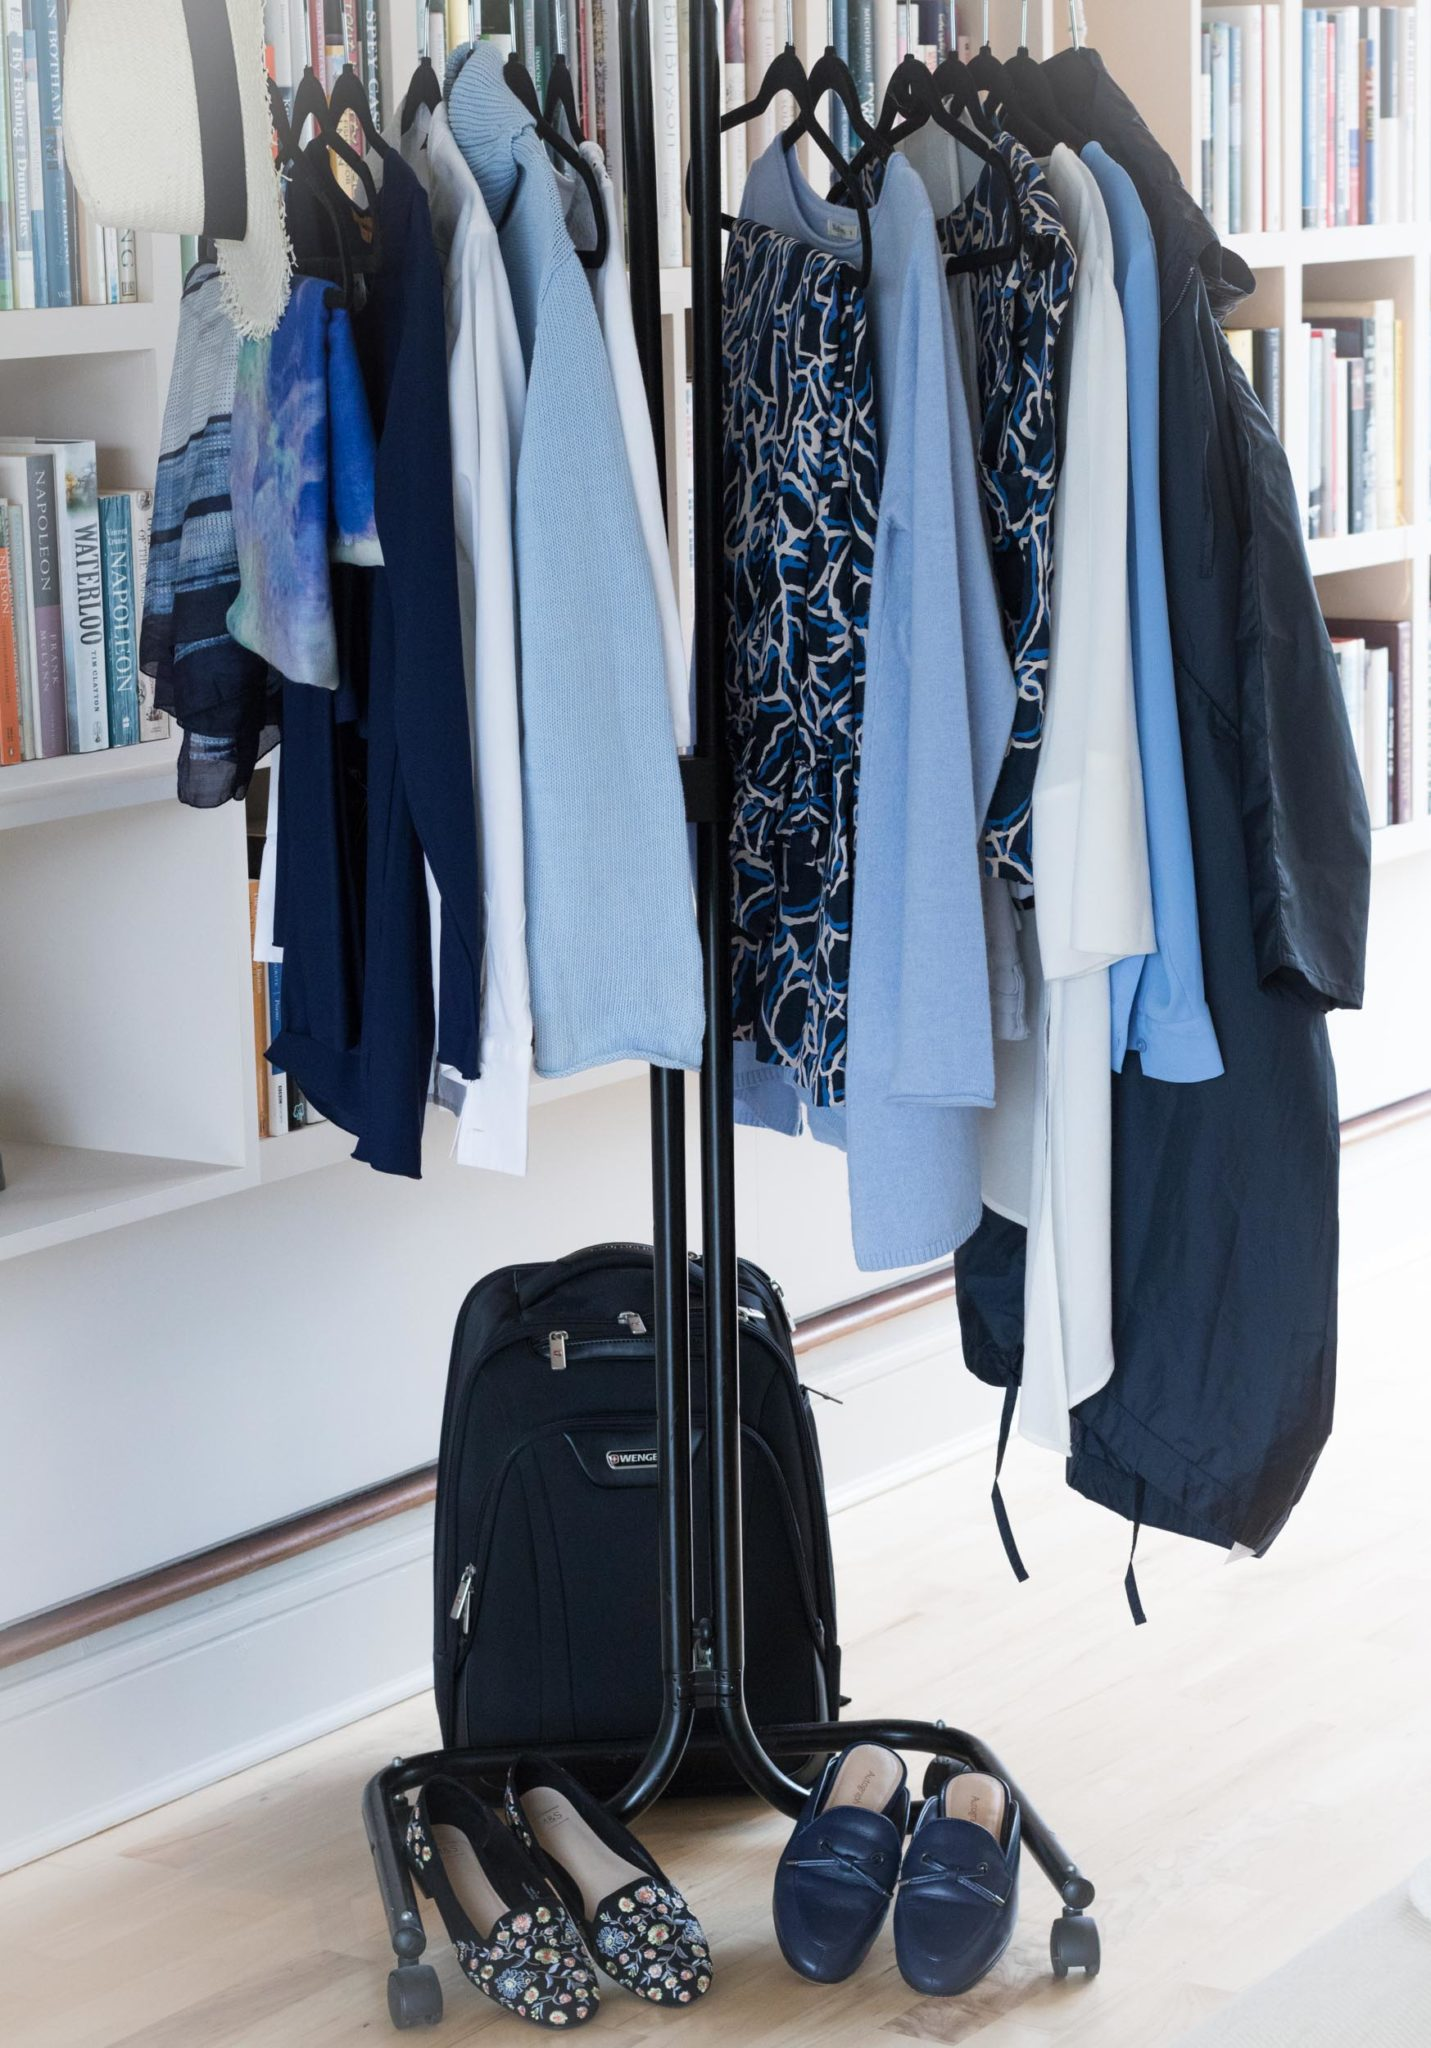 Capsule wardrobe for a trip to France